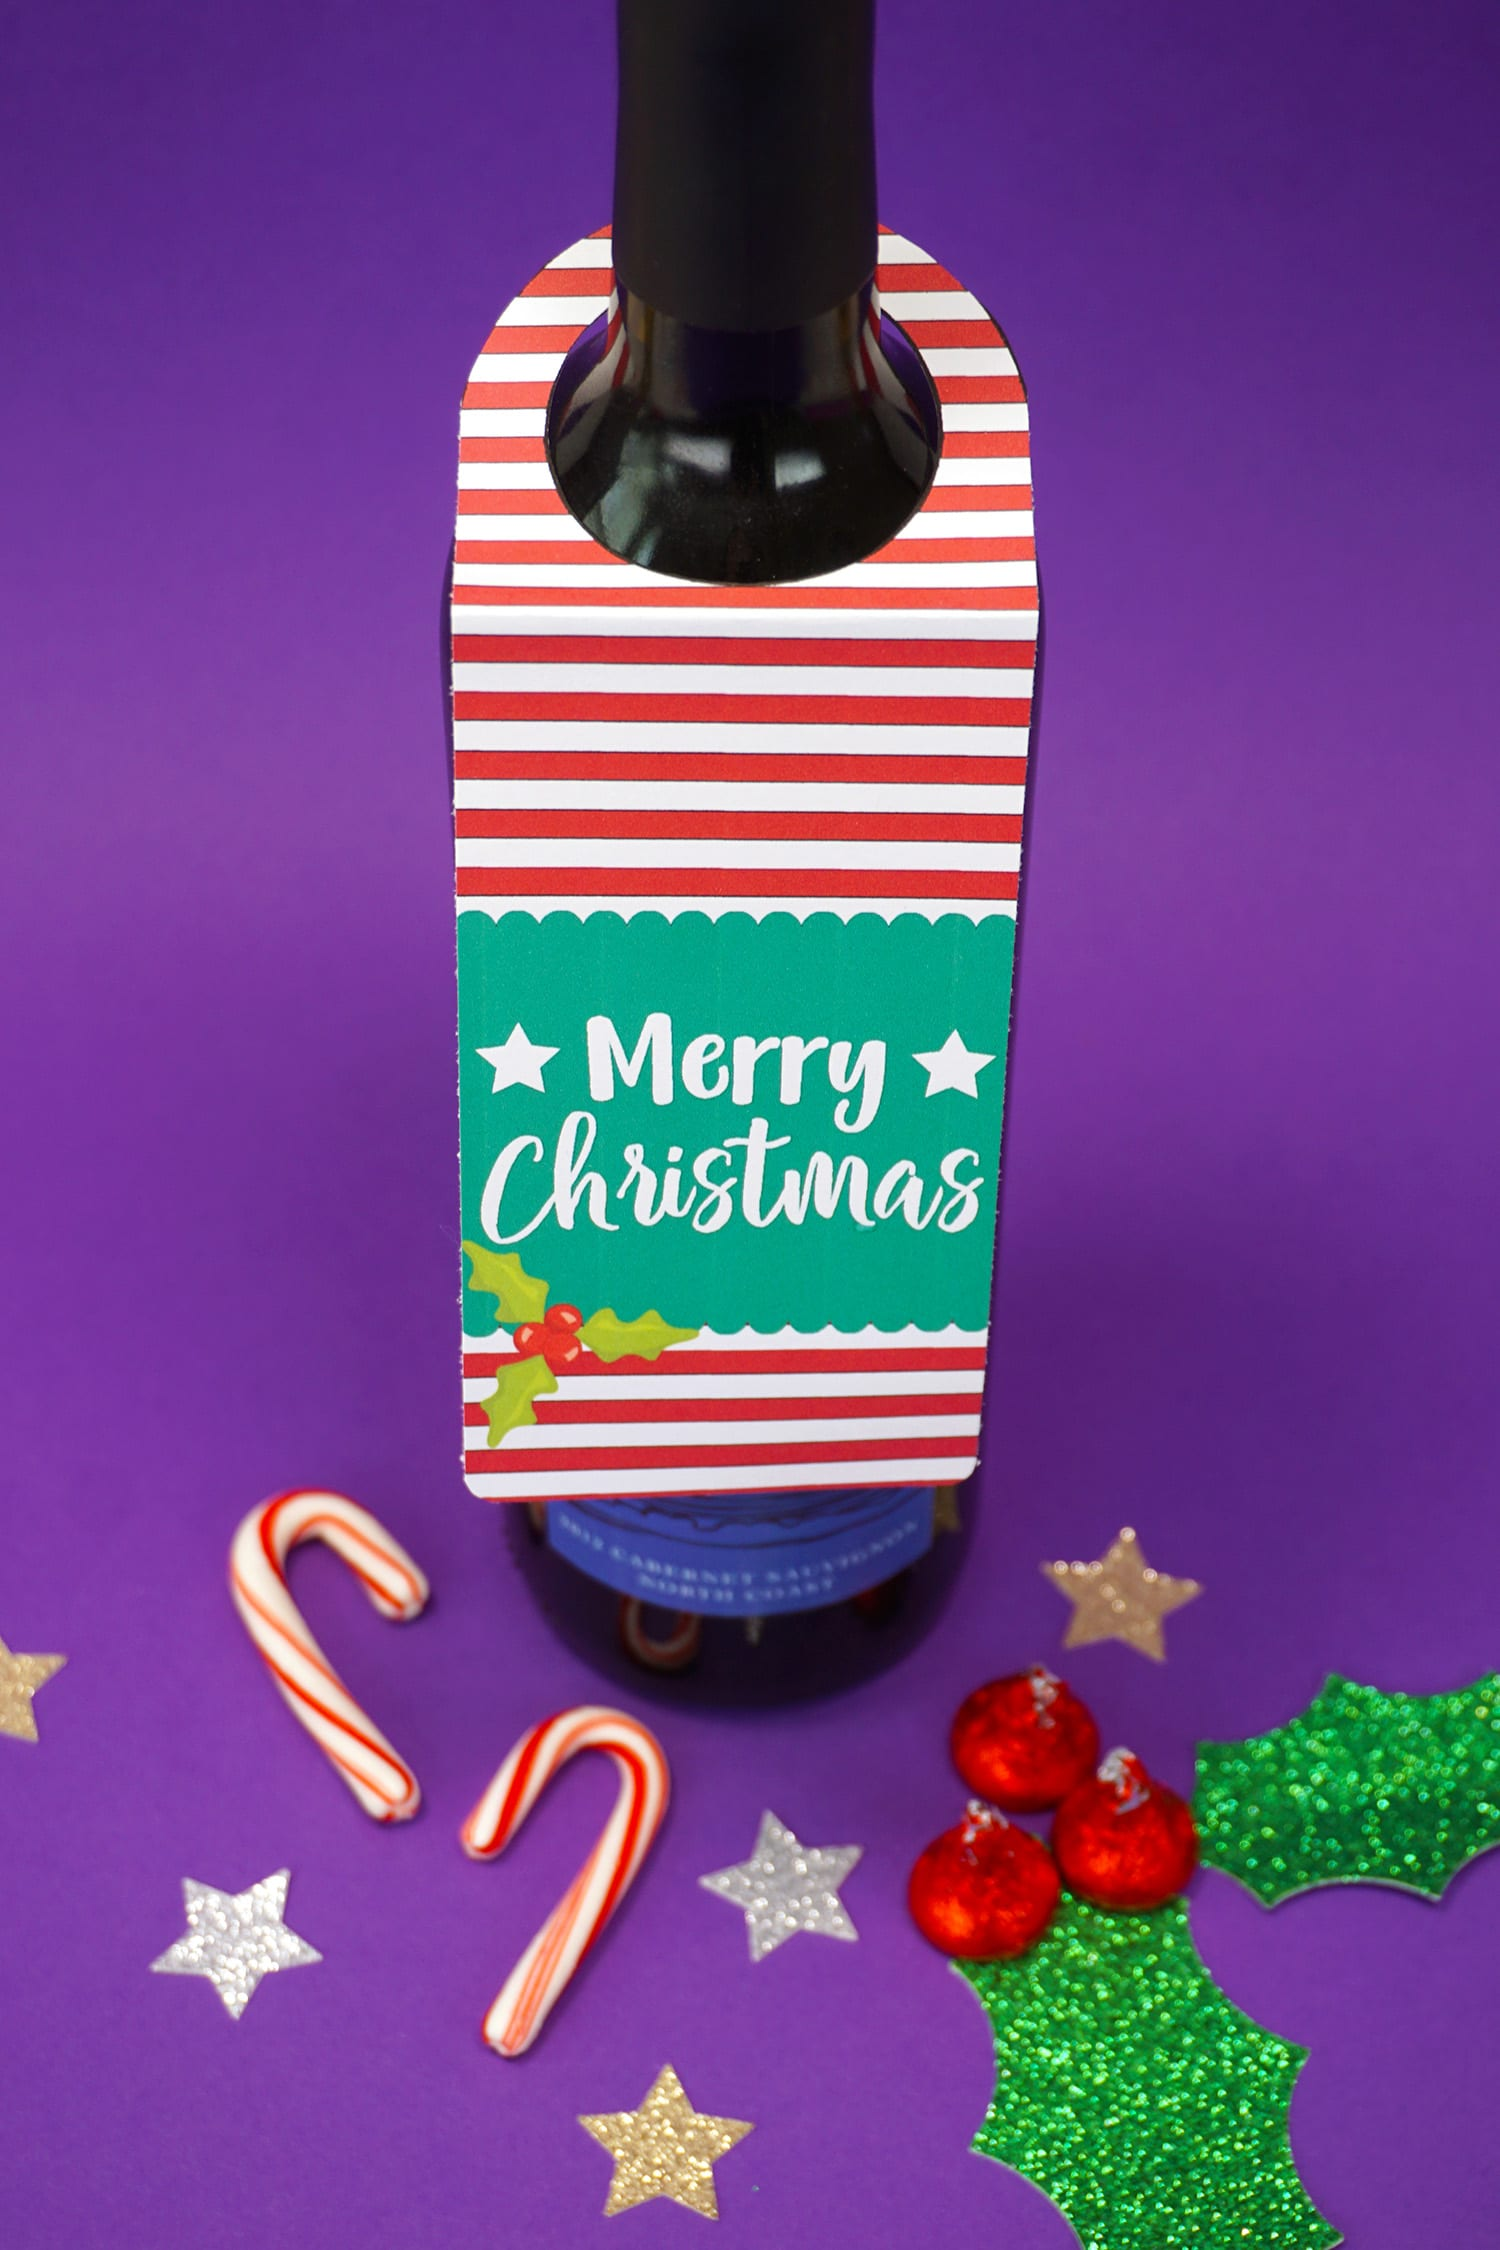 """""""Merry Christmas"""" red, white, and green Christmas wine tag on bottle on purple background with candy canes and stars"""